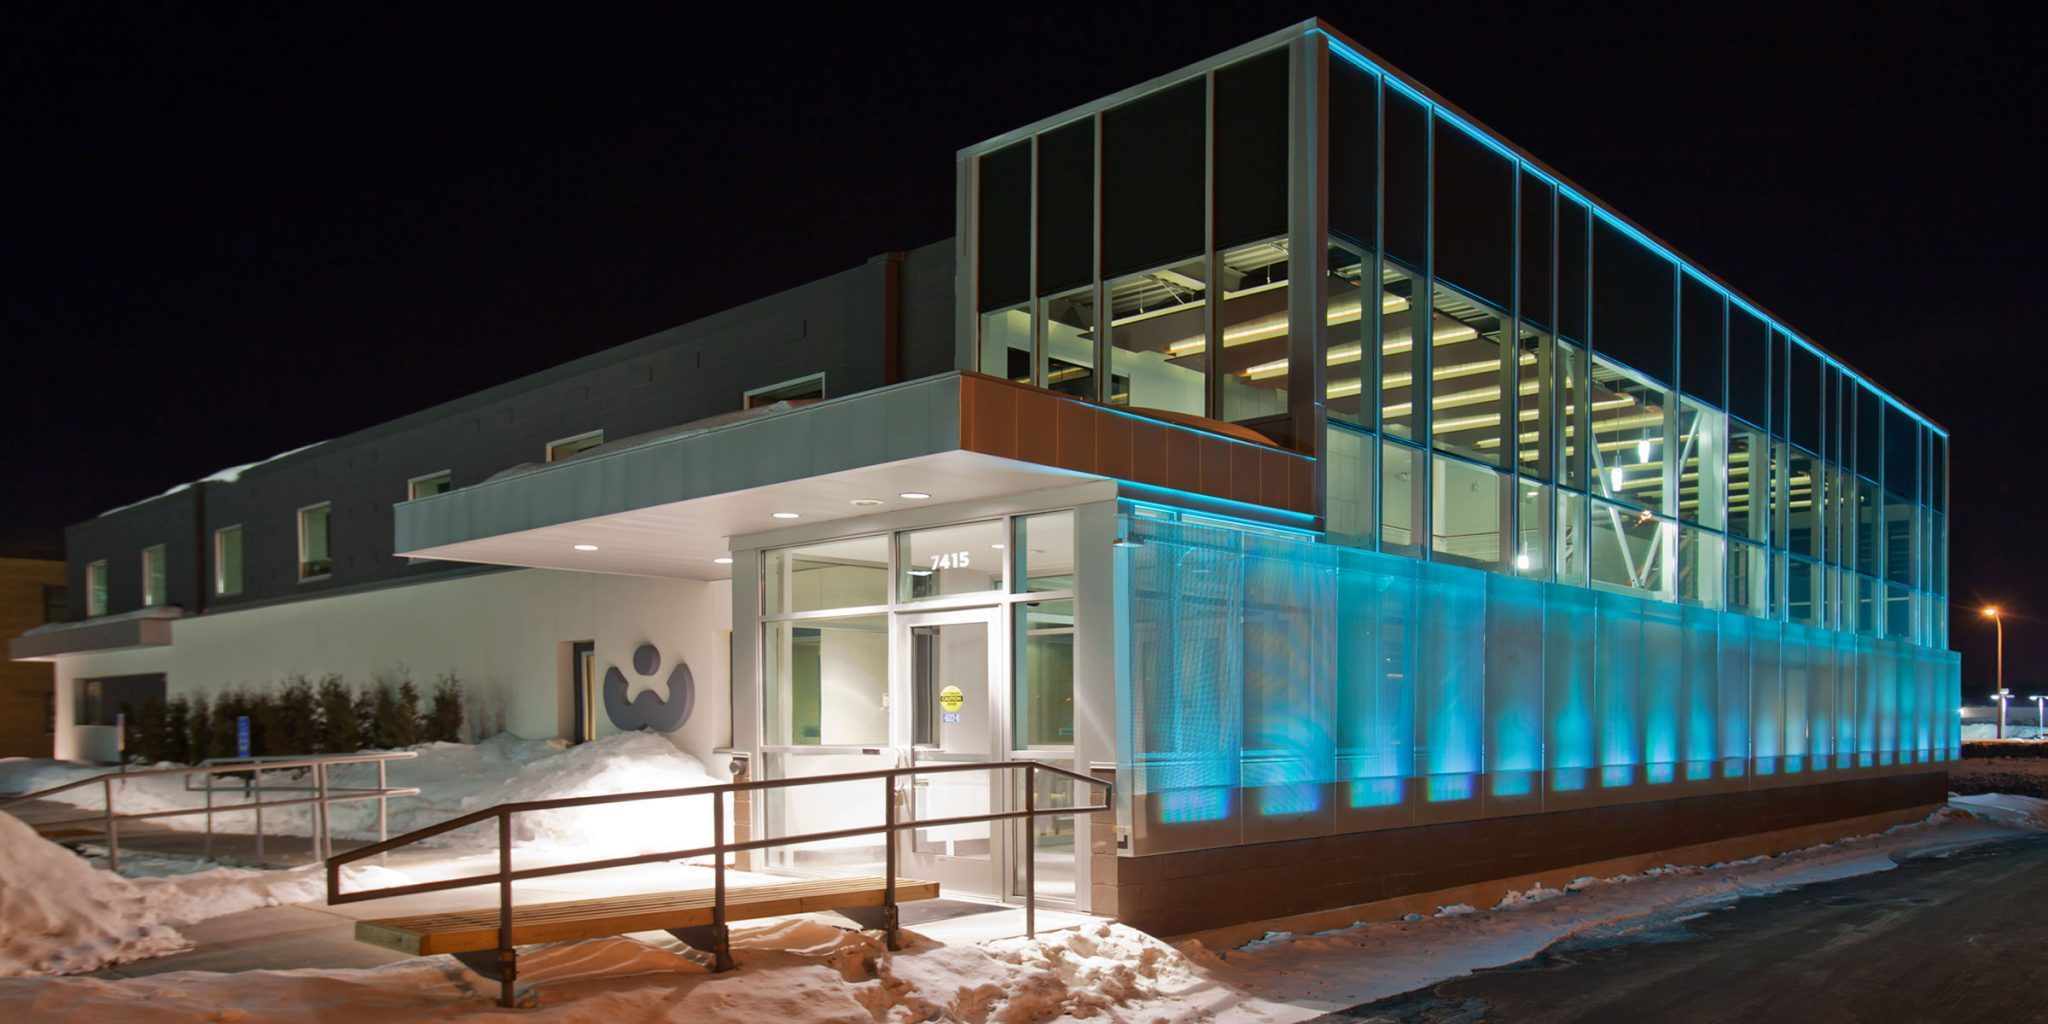 roehrschmitt_architecture_medical_whiting-clinic_exterior_east_hero.jpg